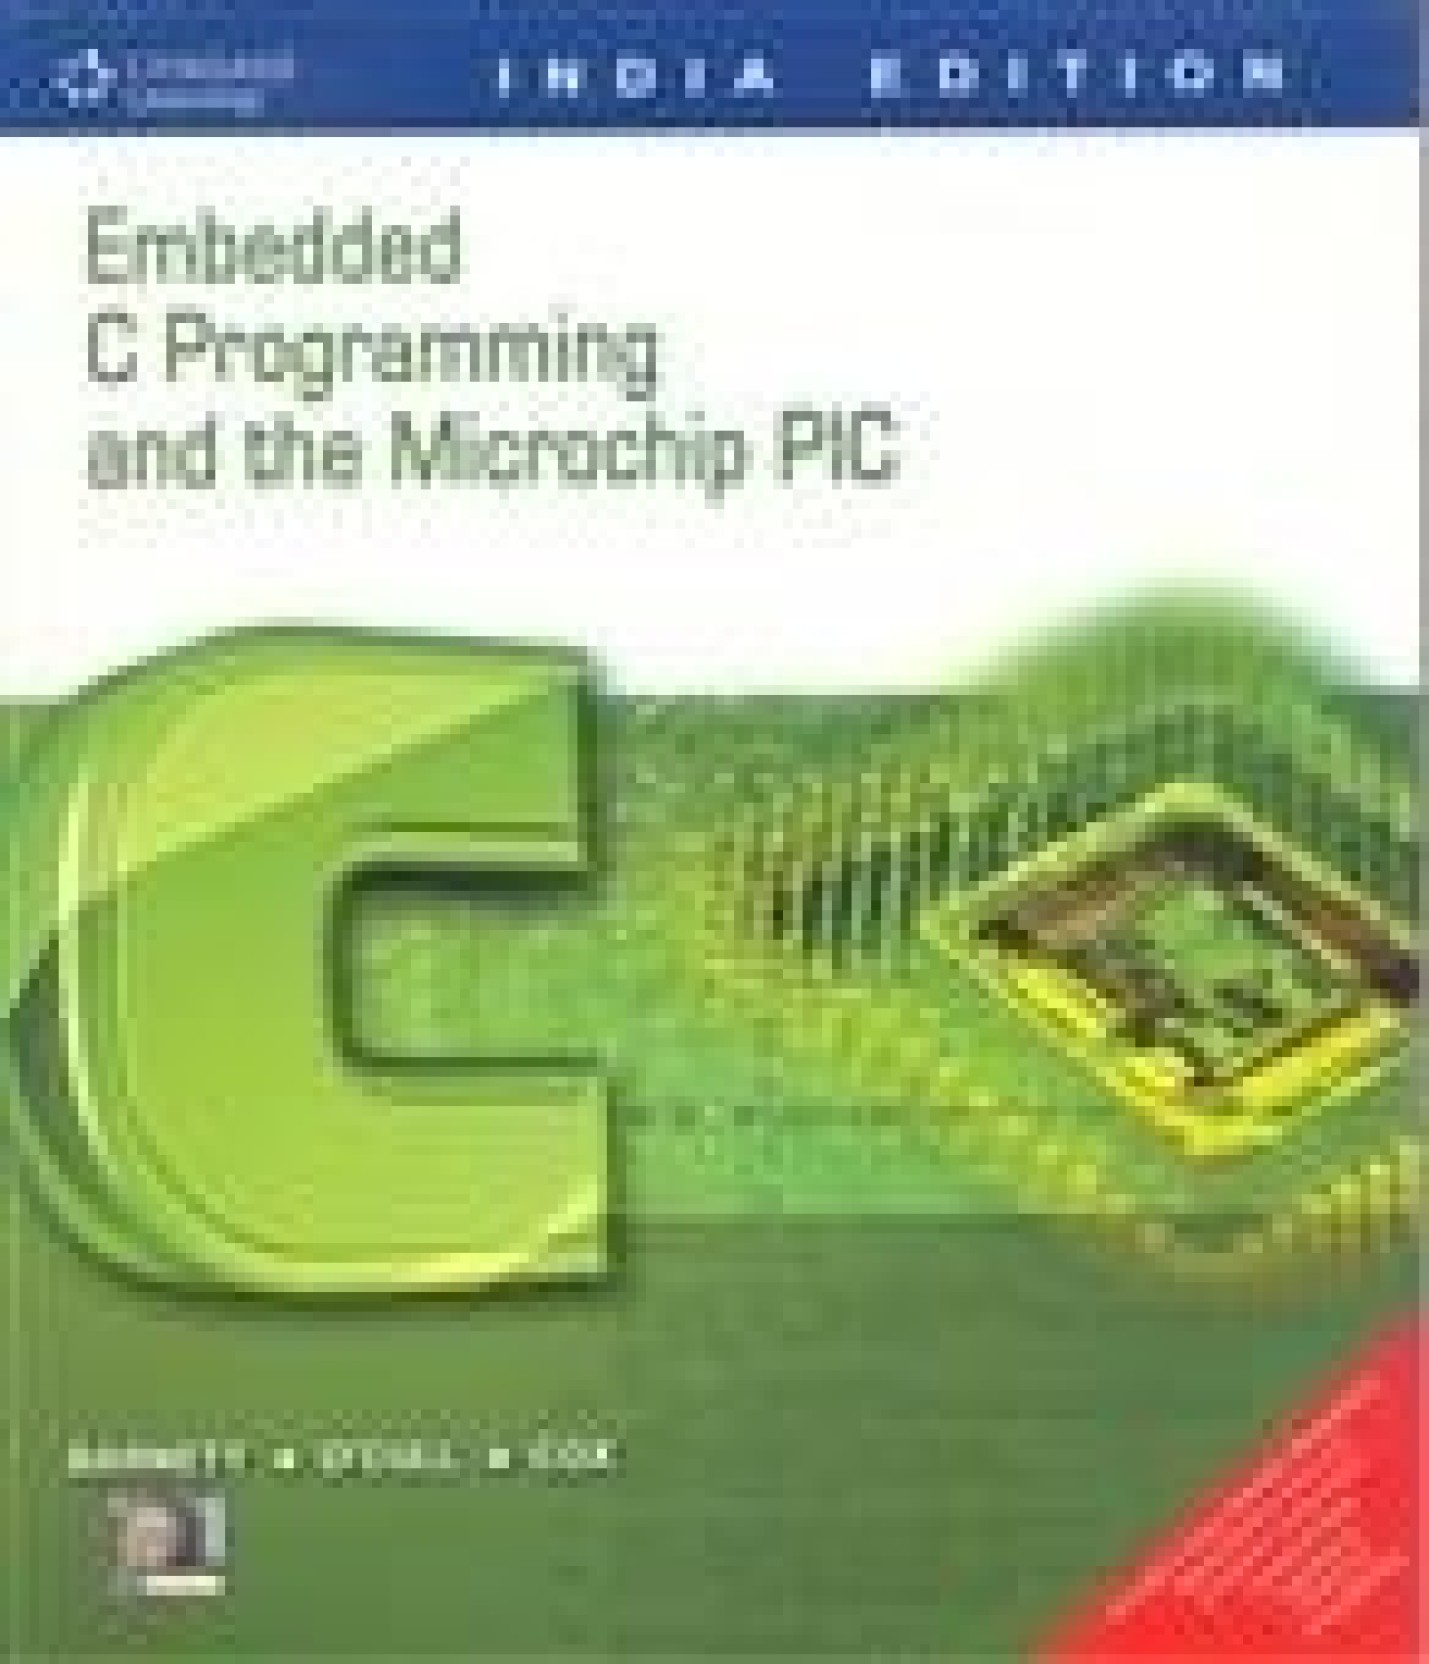 Embedded C Programming & the Microchip PIC 1st Edition: Buy